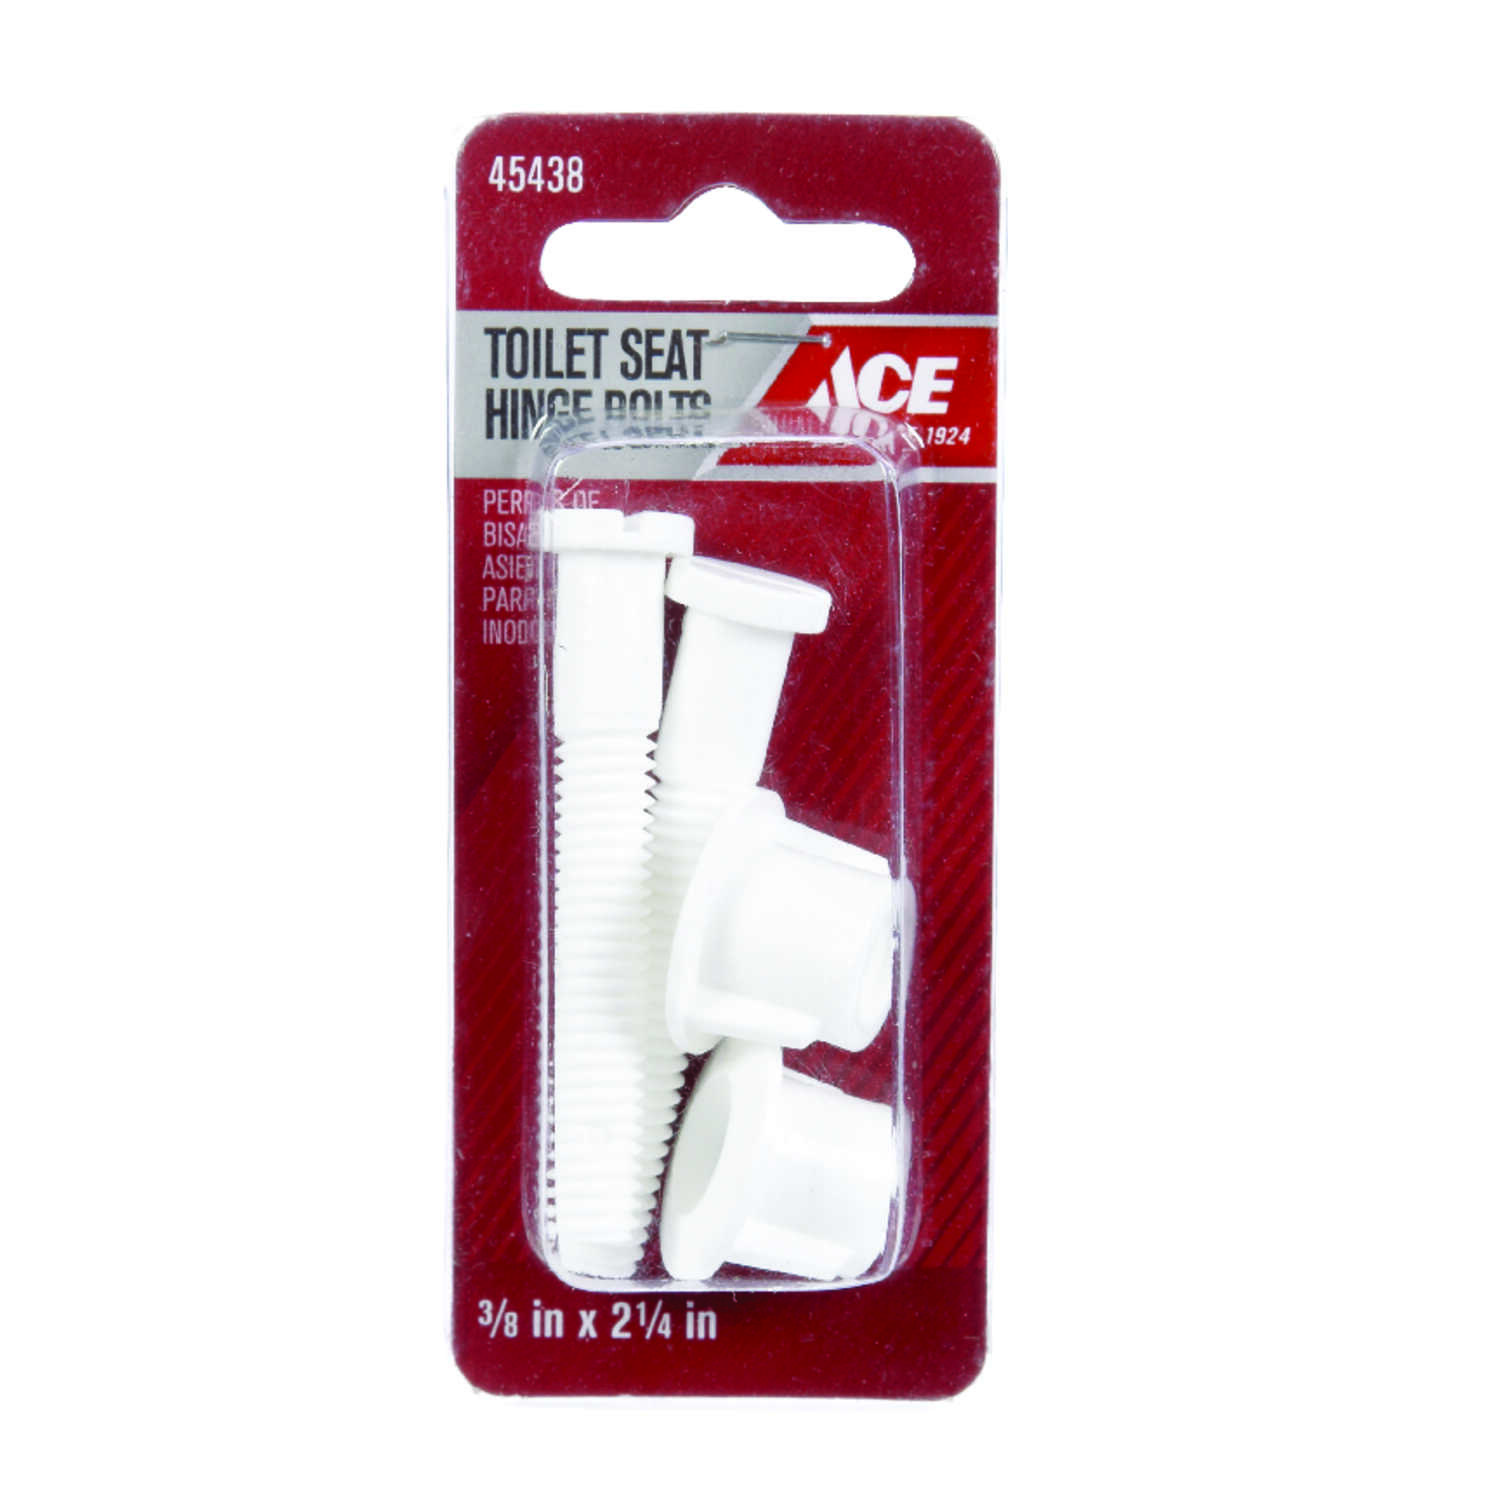 Ace Toilet Seat Hinge Bolts Plastic Ace Hardware